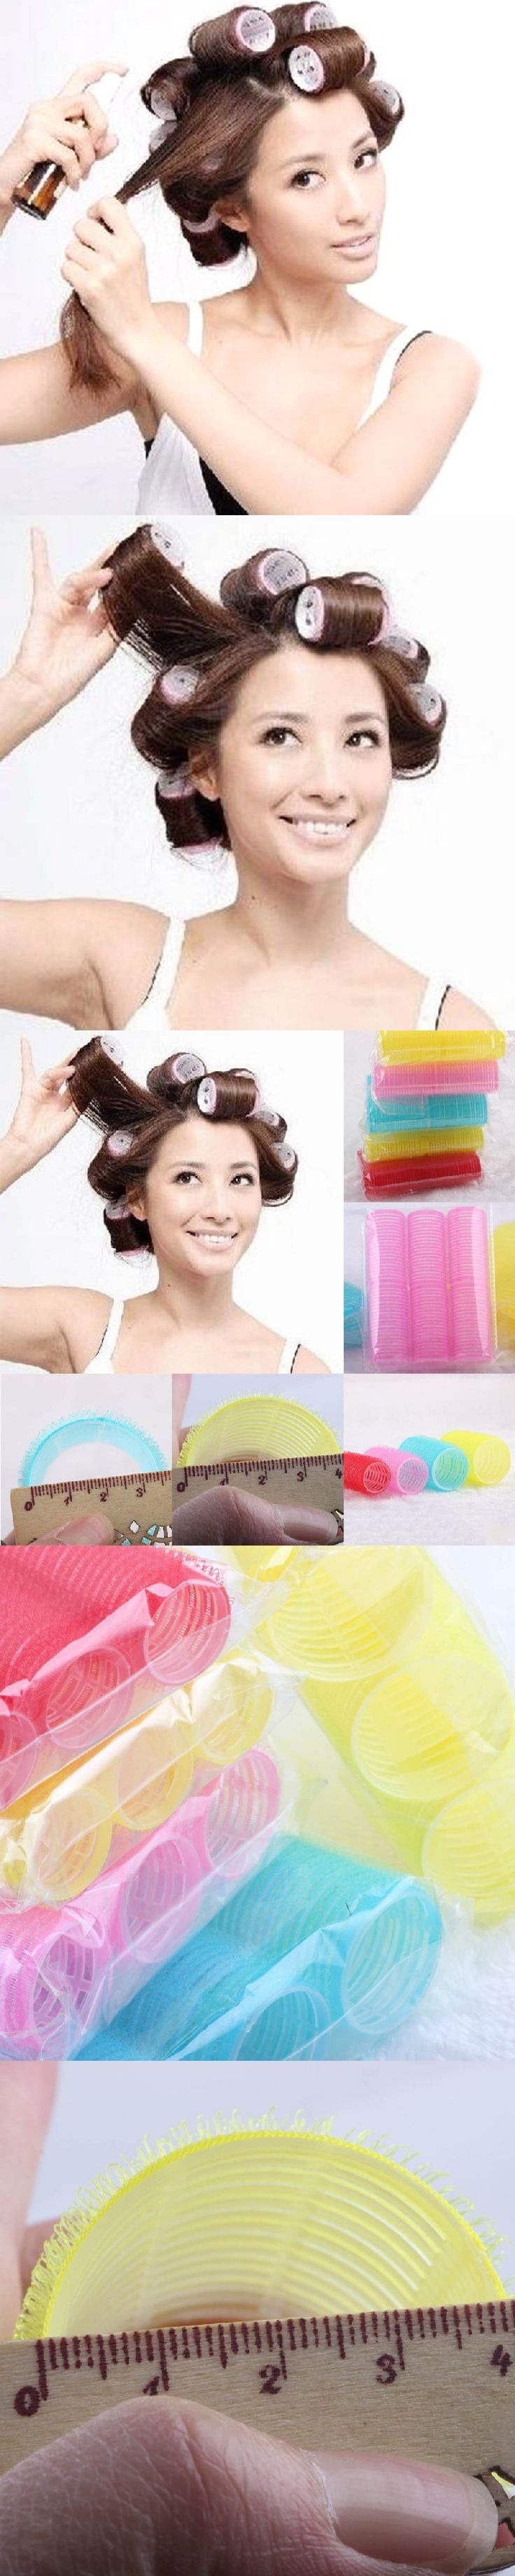 6Pcs/Sets Women Girls Big Self Grip Hair Rollers Cling Any Size DIY Hair Curlers Styling Tools